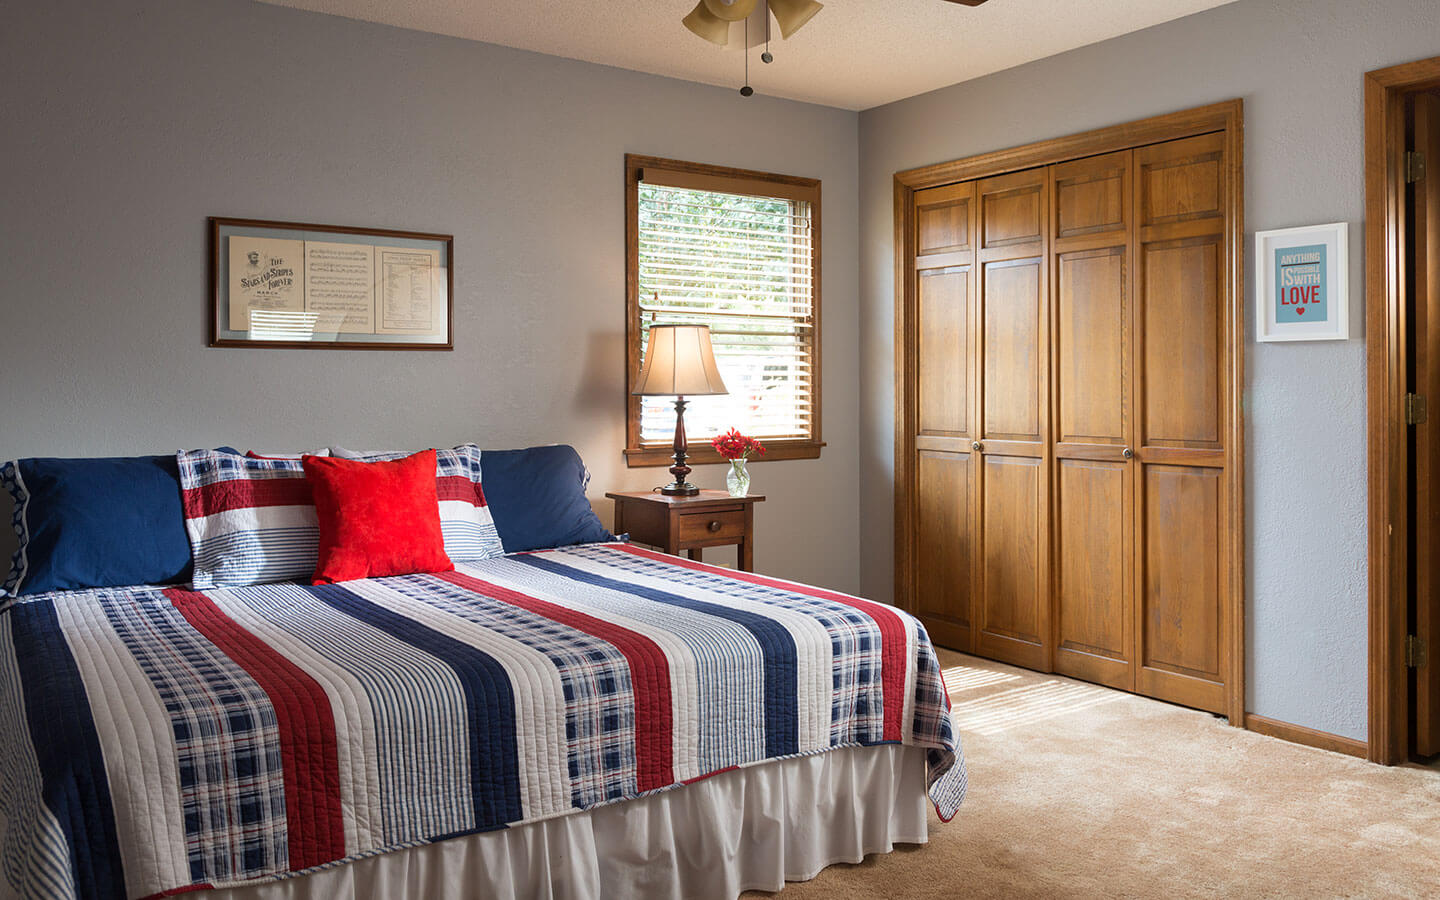 Kansas City Area Bed and Breakfast - Brotherly Love room